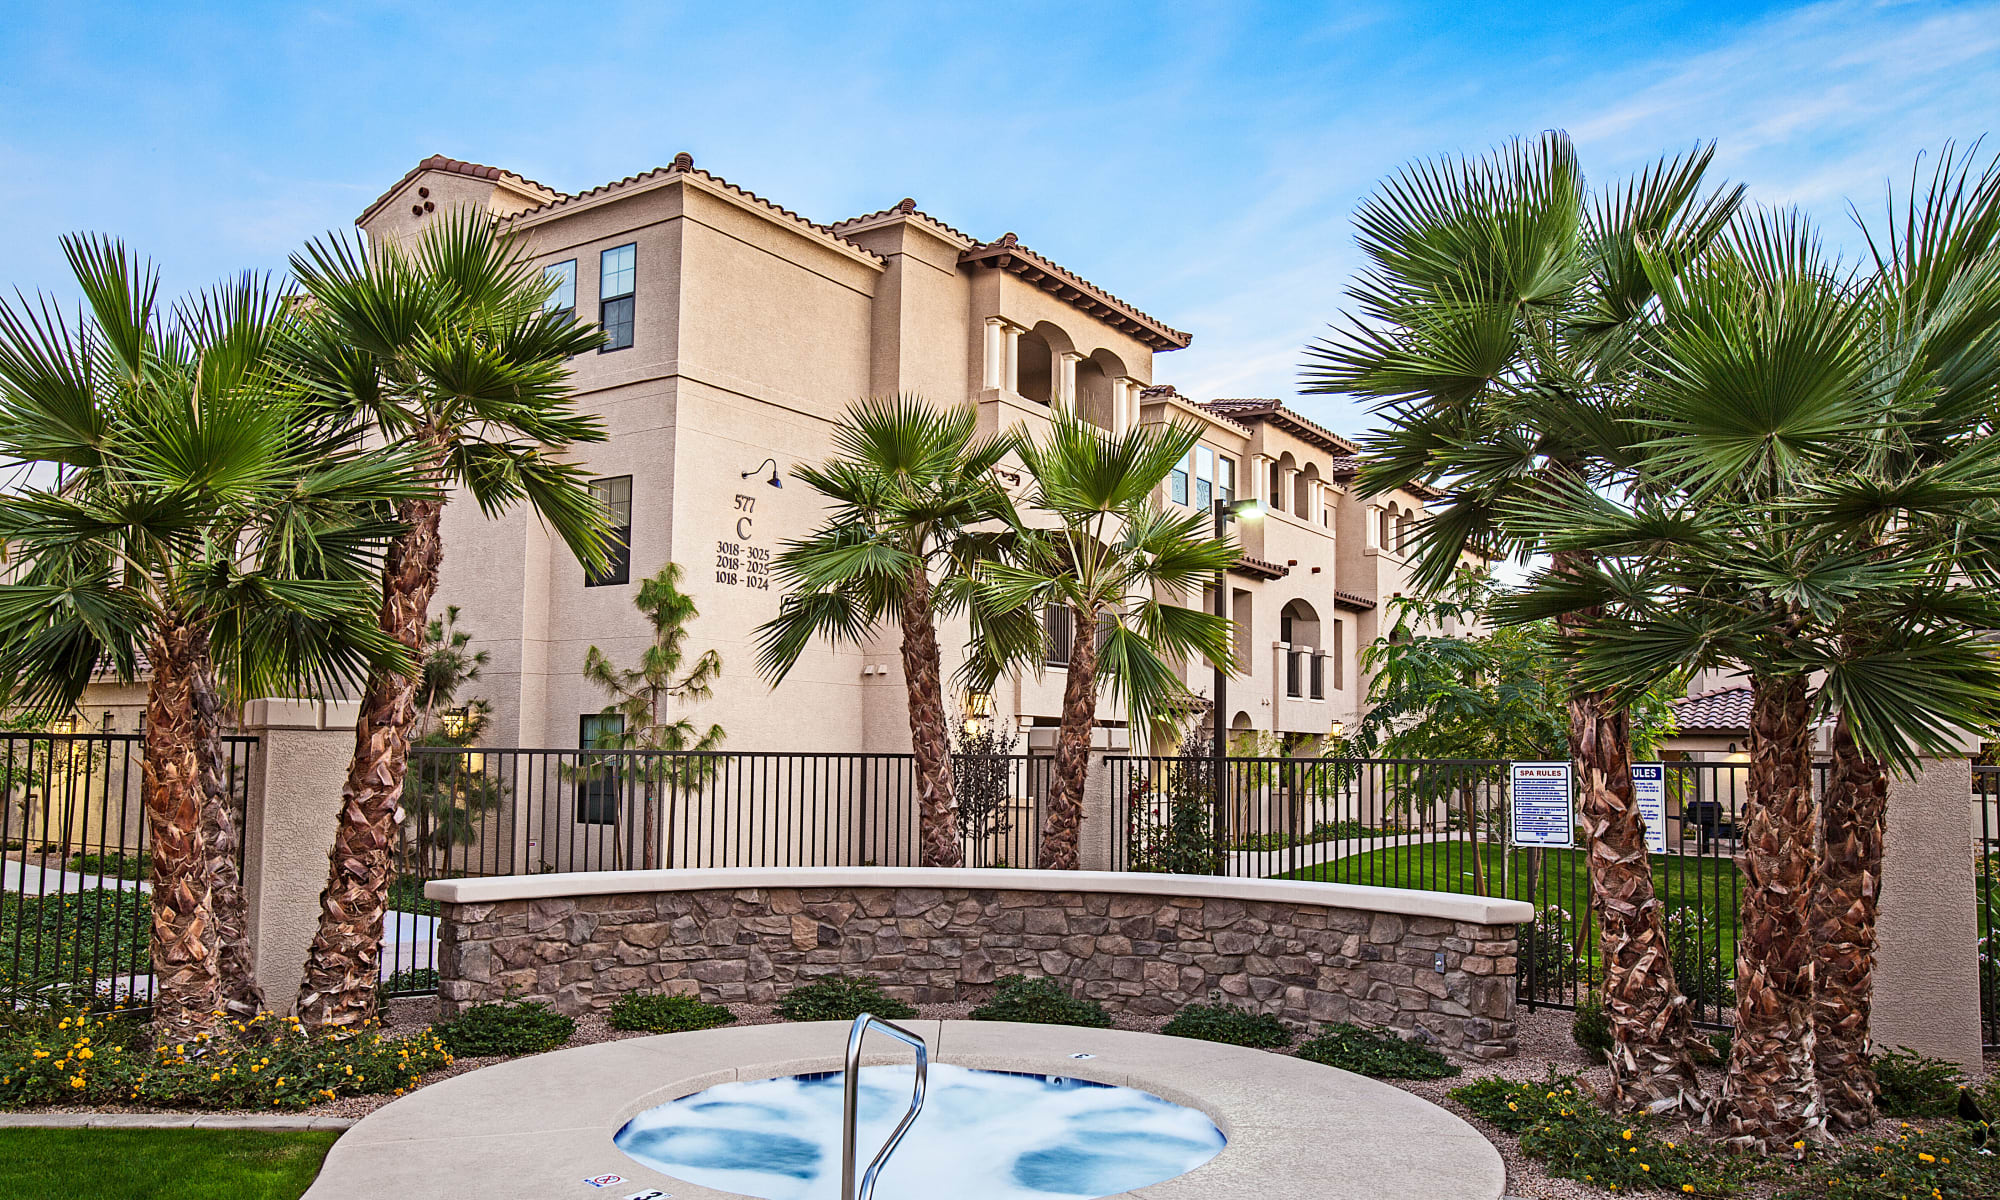 Pet friendly apartments with spacious outdoor areas at San Marquis in Tempe, Arizona